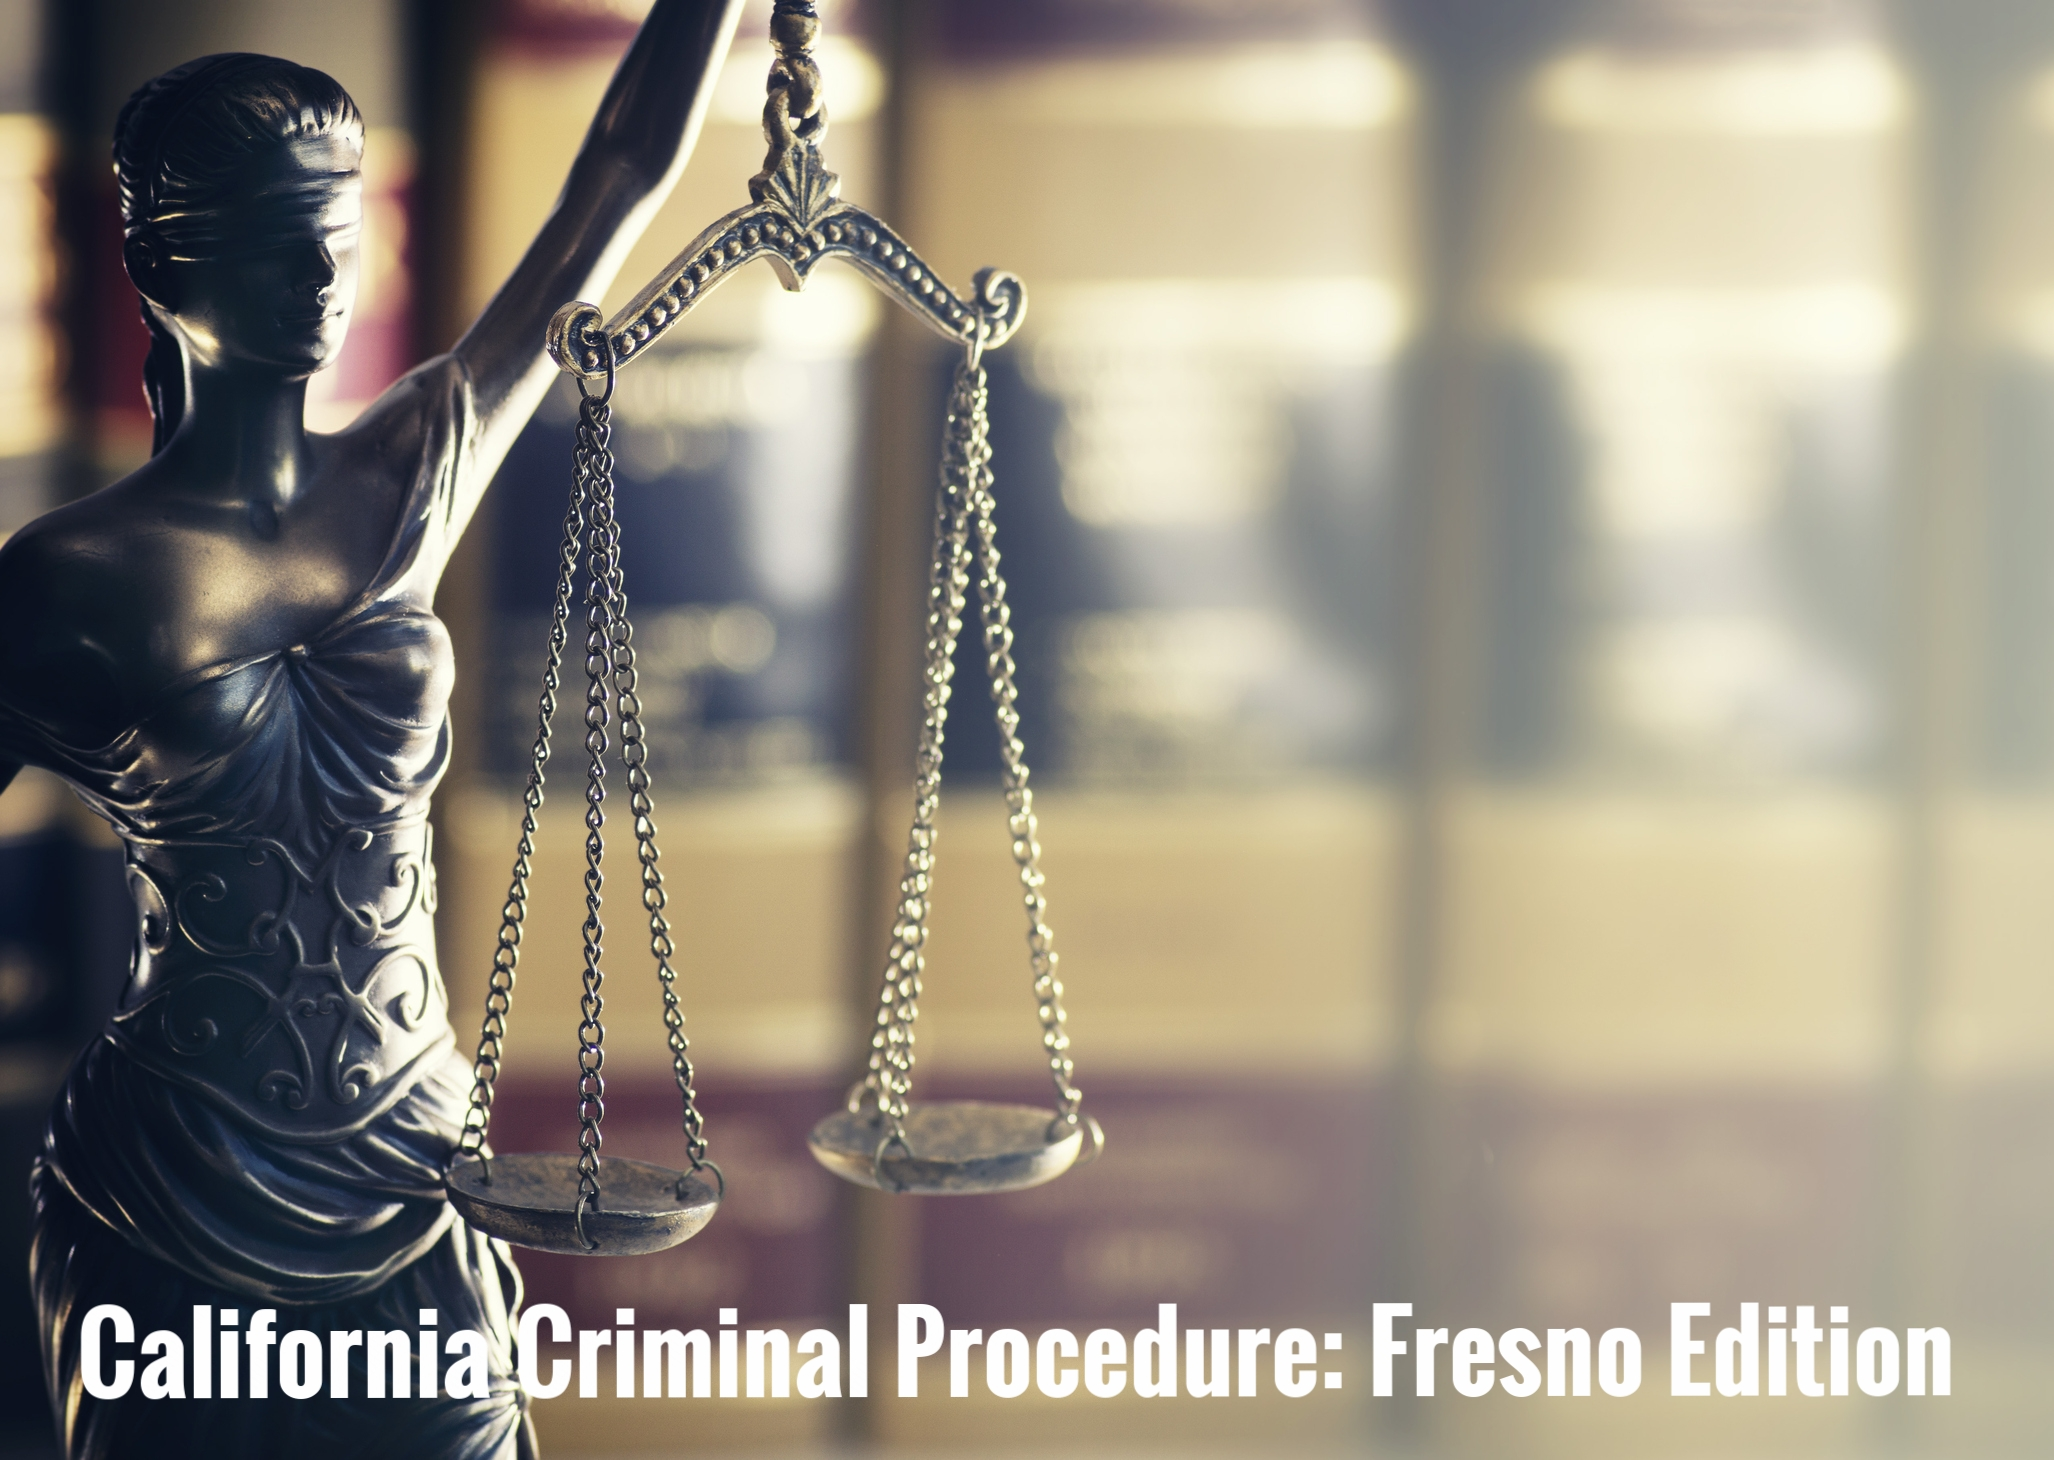 California criminal court procedures vary greatly amongst the 58 counties.  Get to know how your county works to give you a better shot at success. Photo by BCFC/iStock / Getty Images